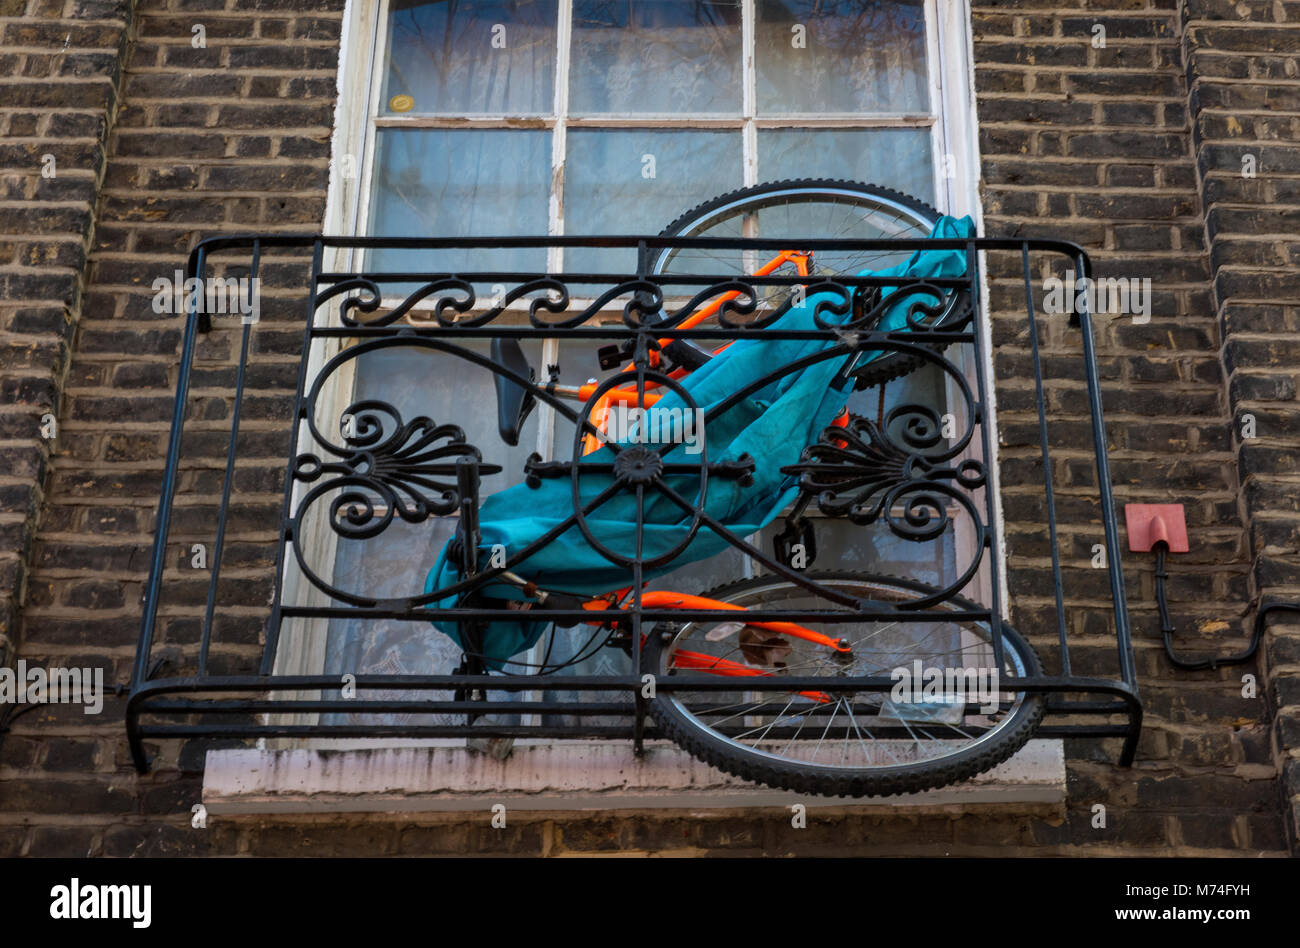 a novel, different and unusual innovative inventive way to store a cycle or bicycle rack in central london. Commuting - Stock Image